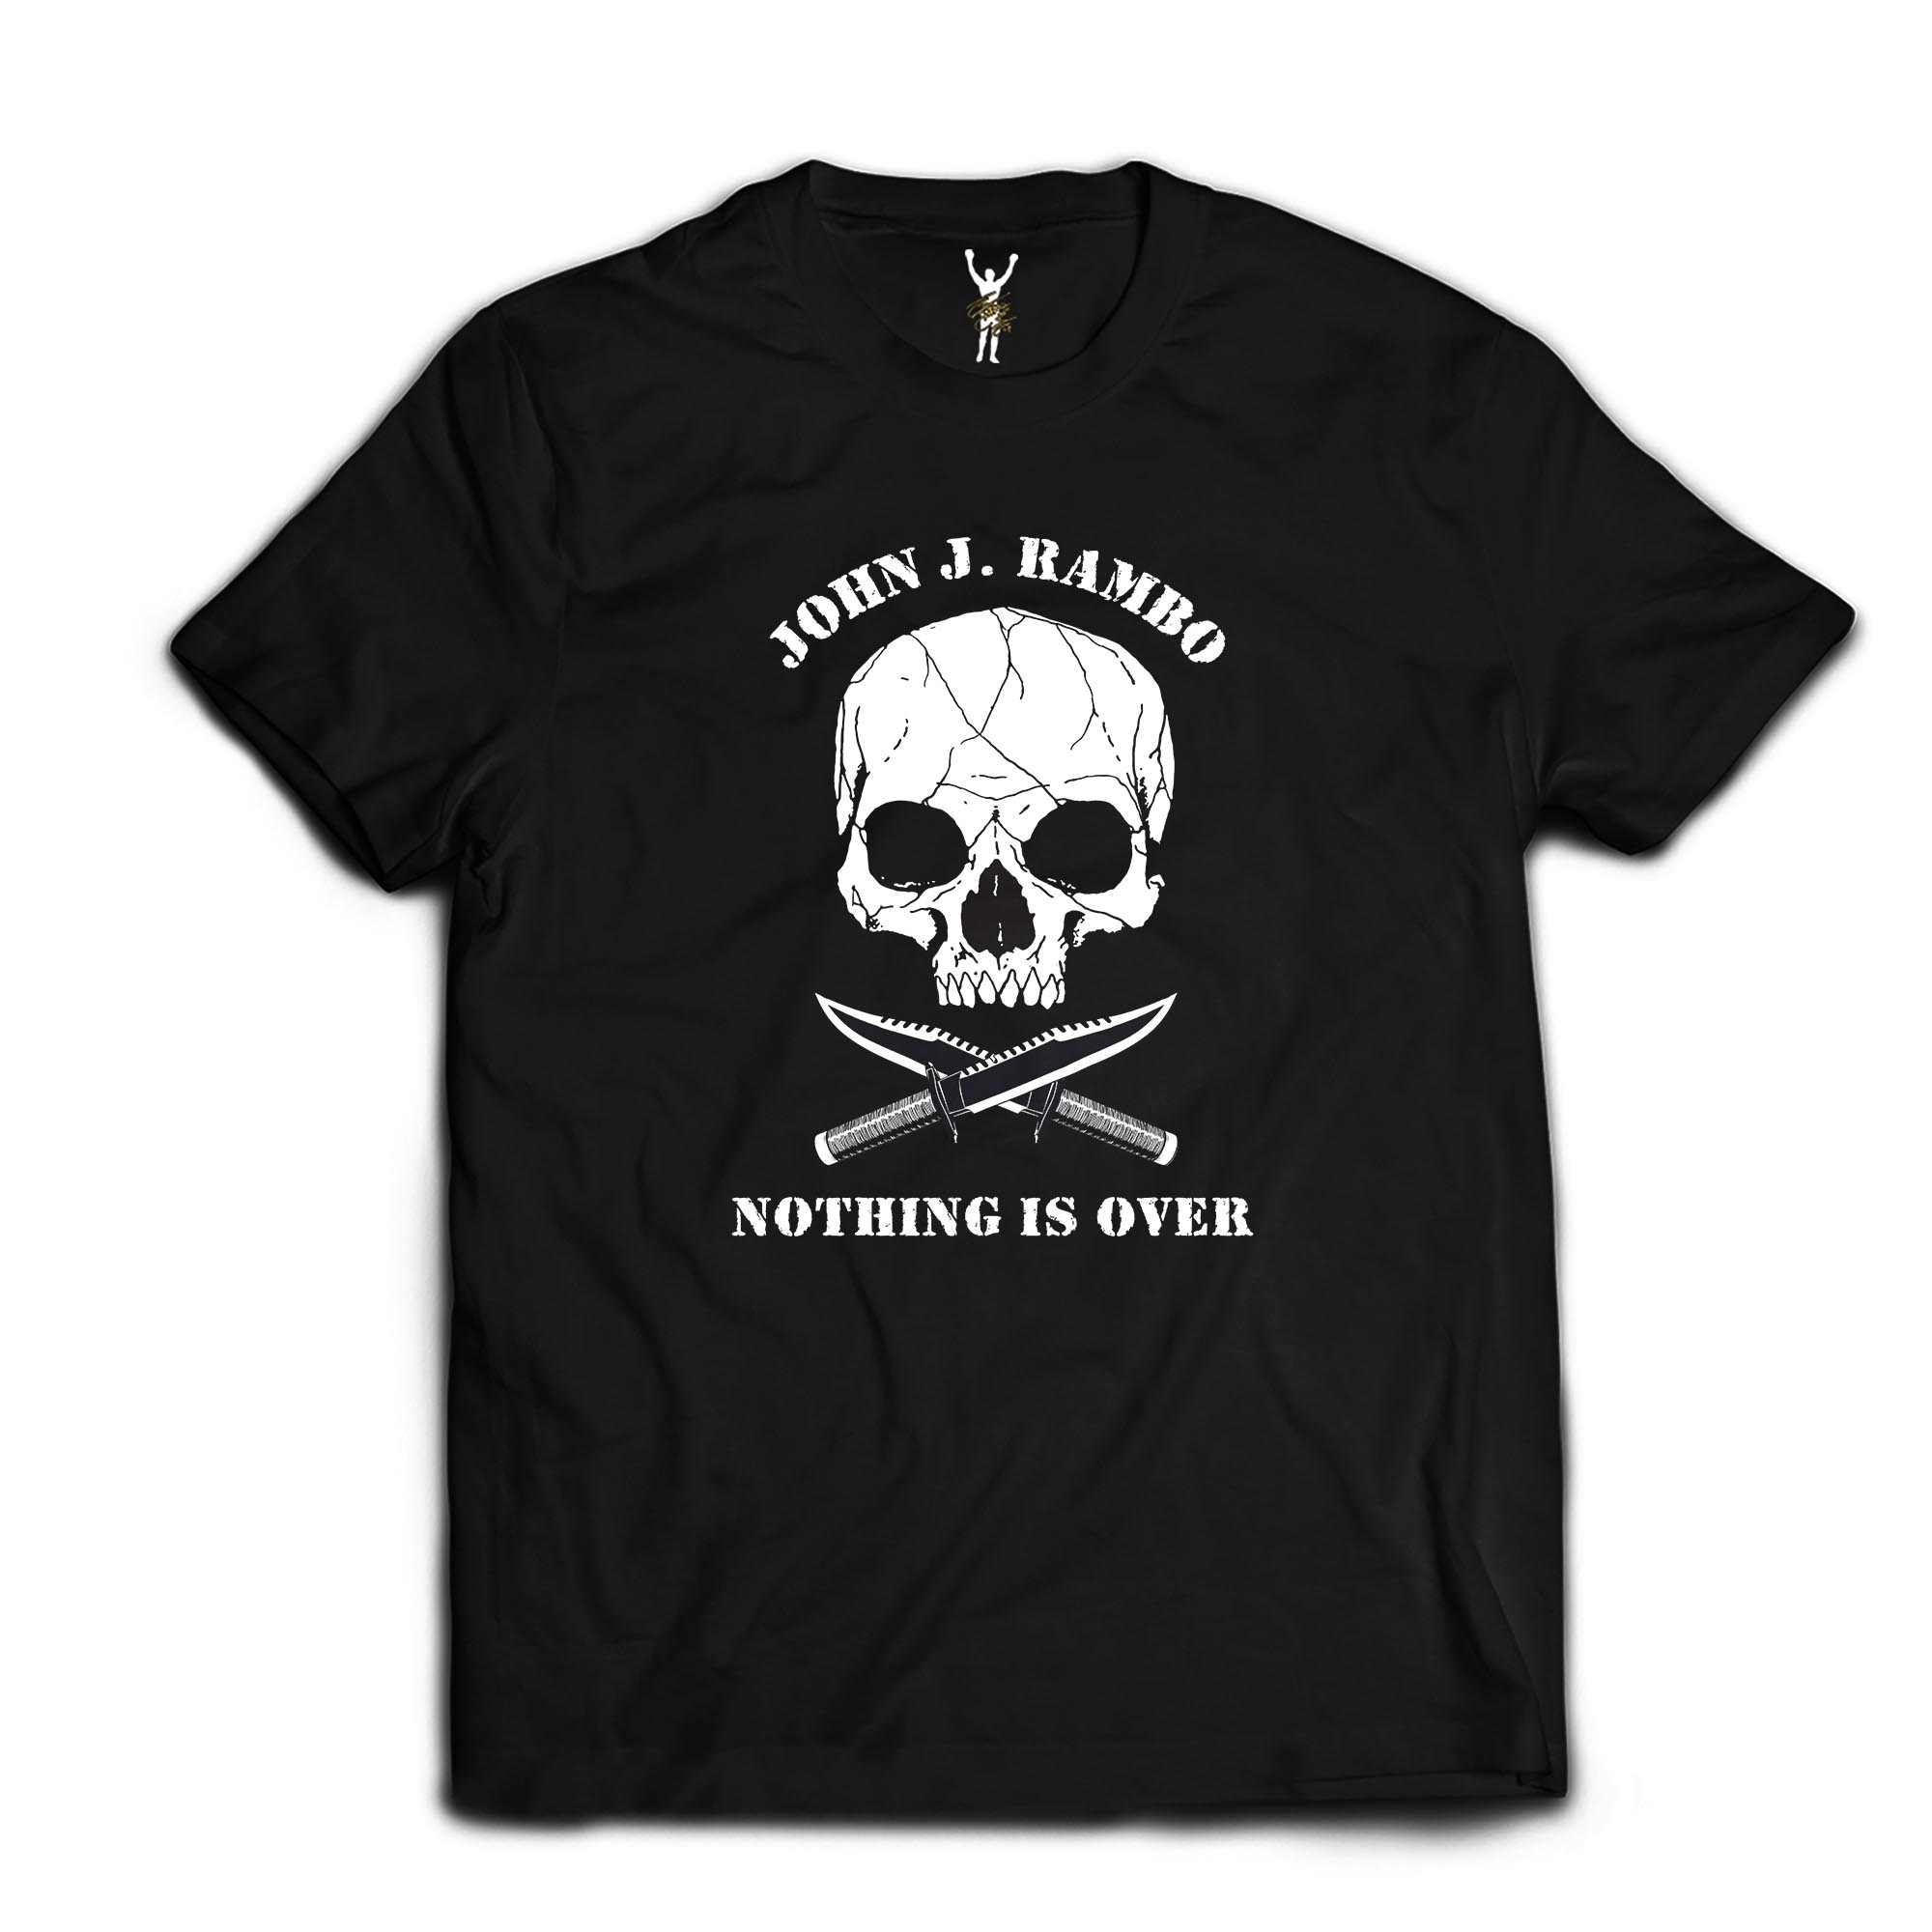 Nothing Is Over Black Tee